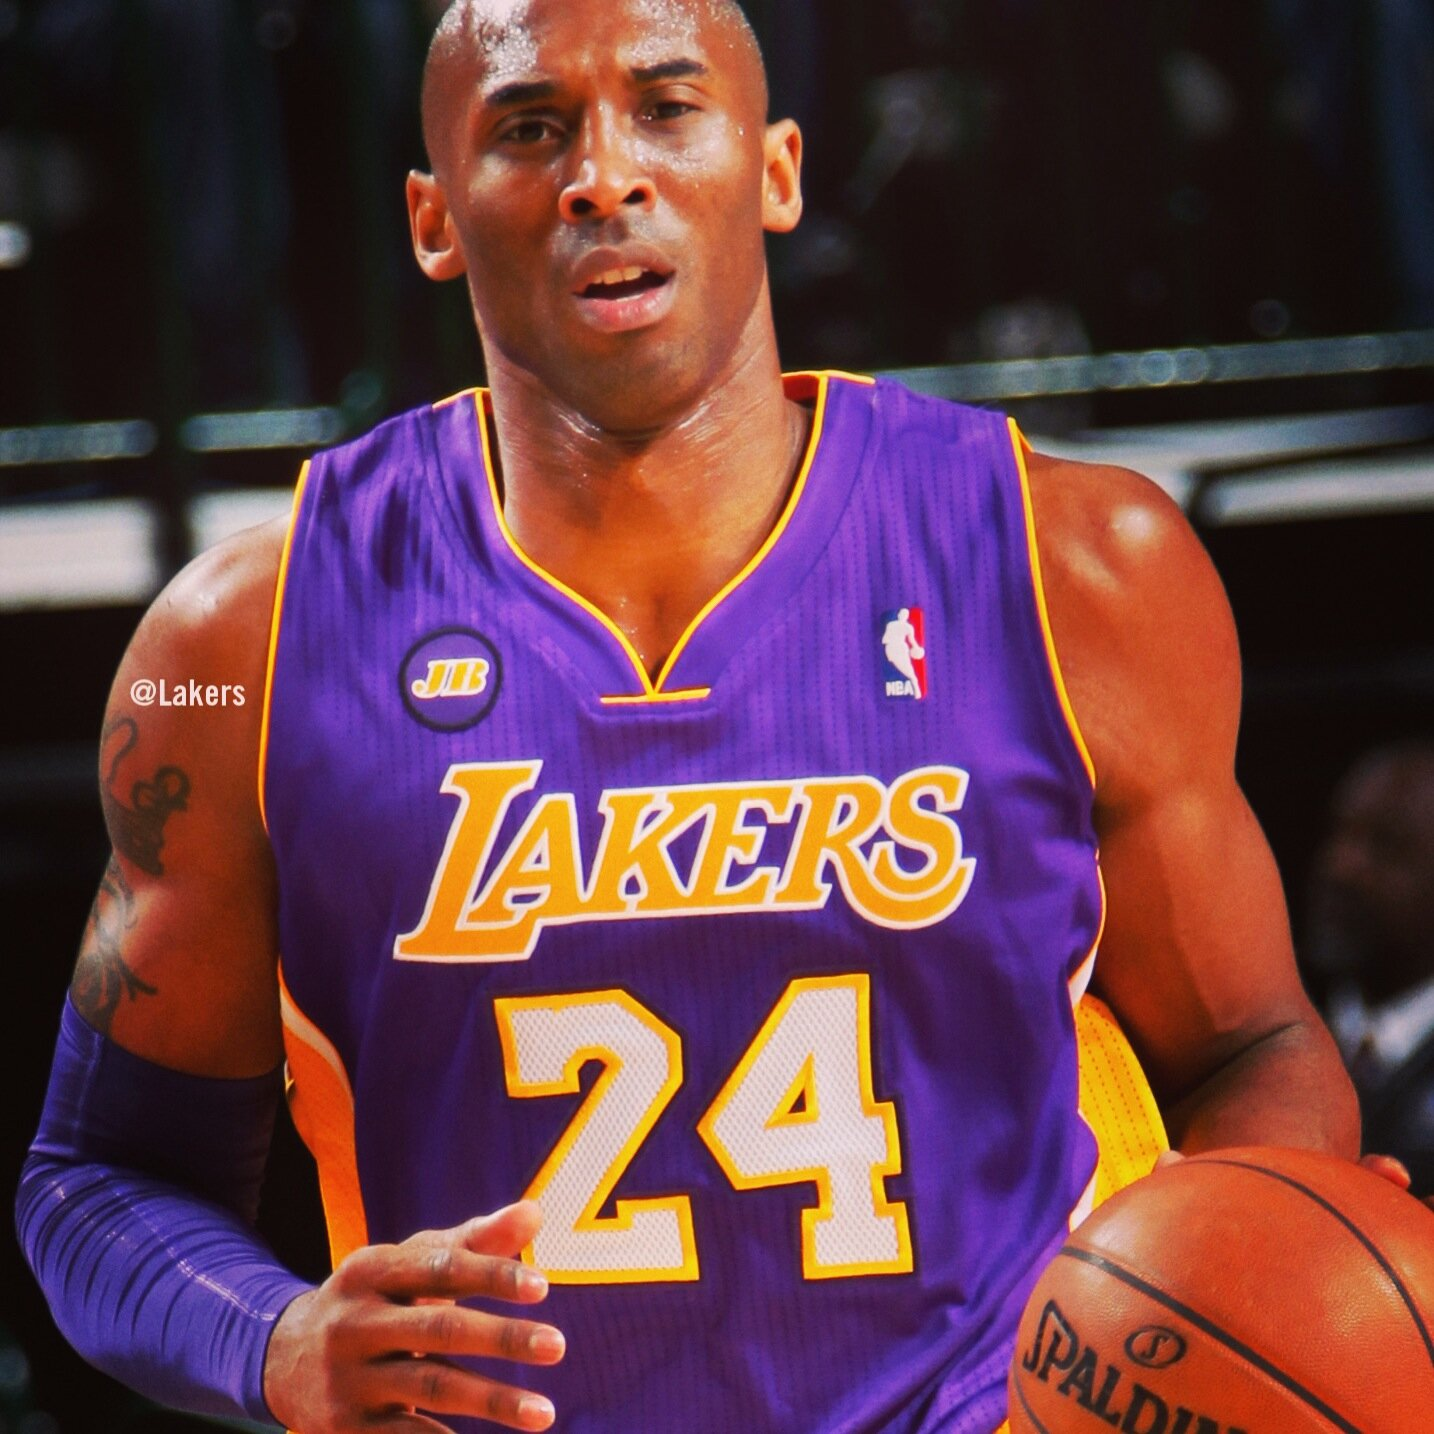 Los Angeles Lakers's Twitter Photo